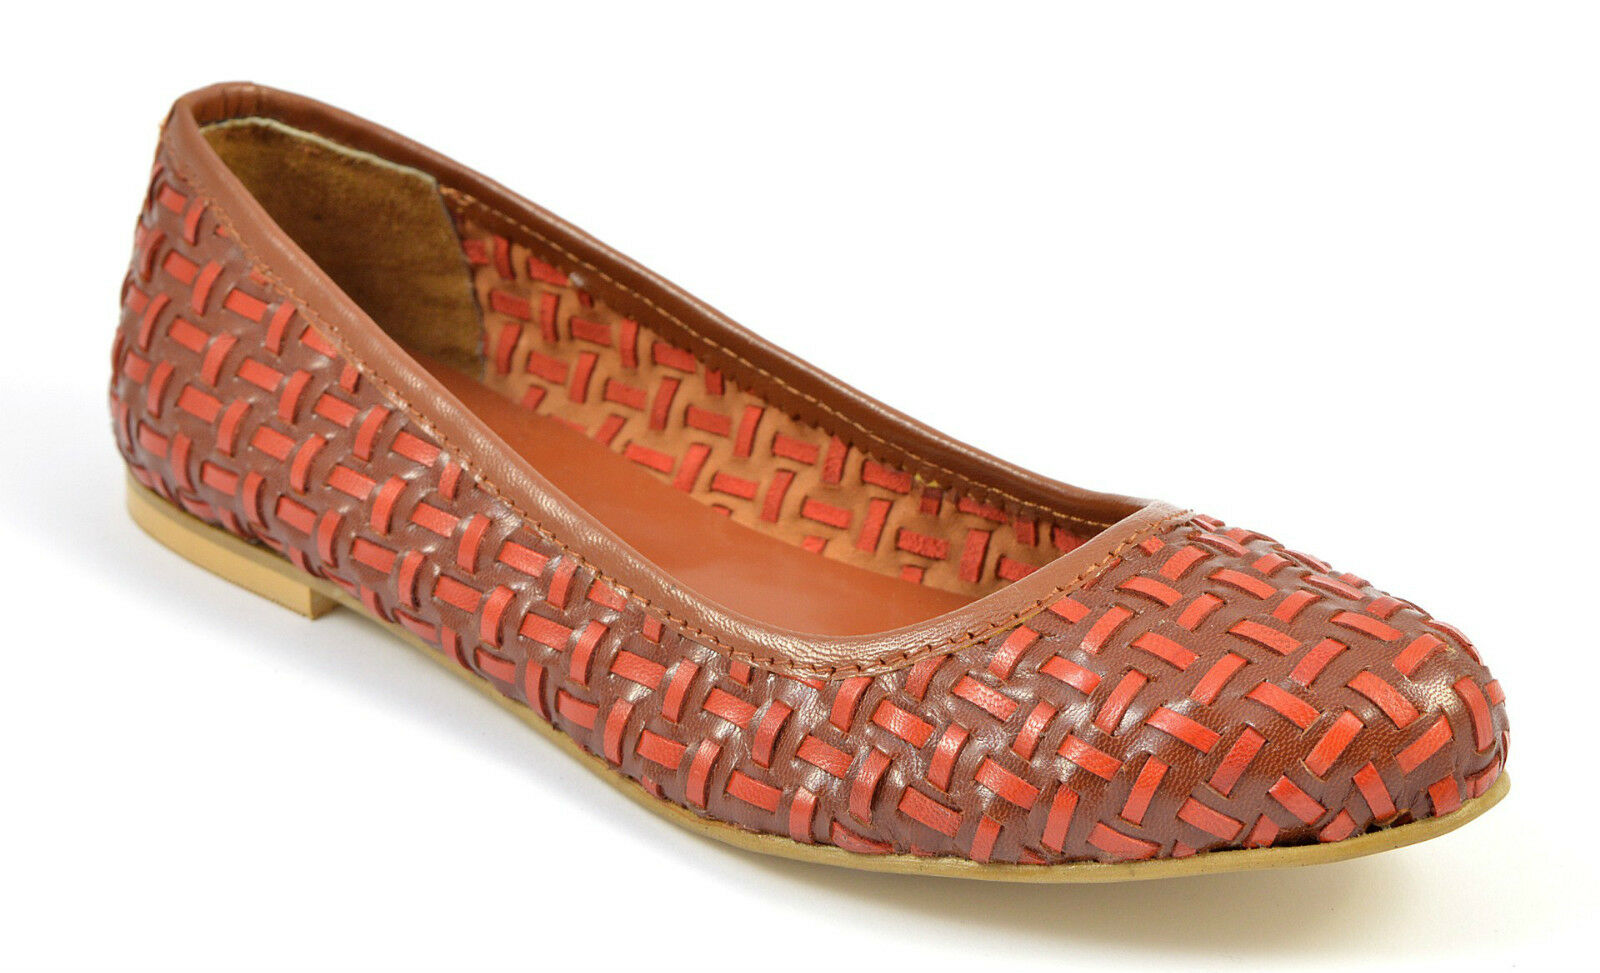 Womens Ladies Brown Woven Leather Pumps Ballerina Loafers Flats Tan Shoes Size